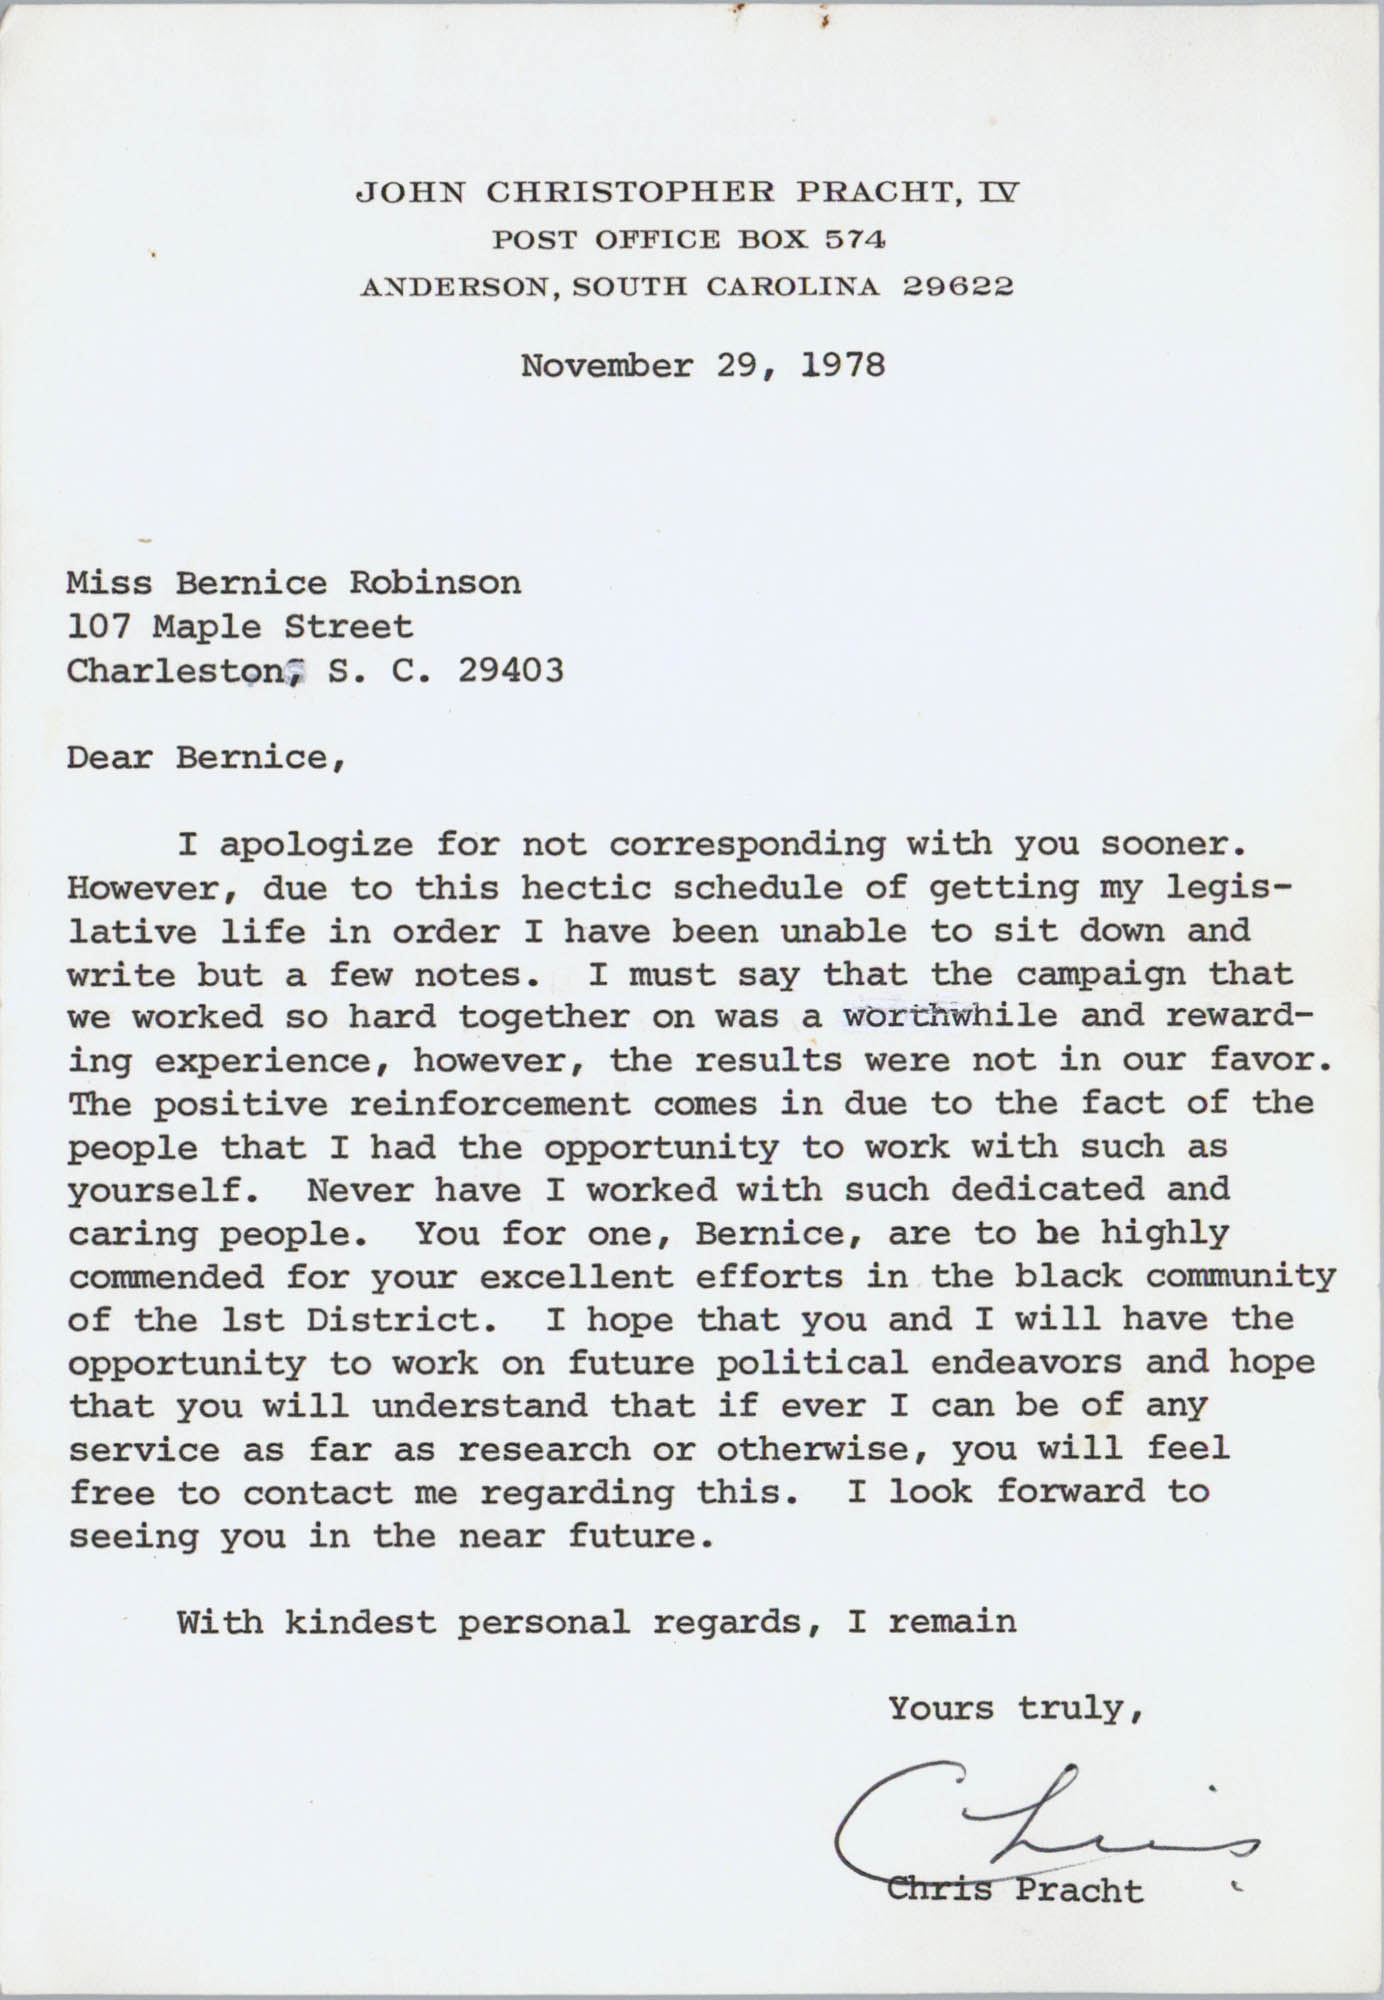 Letter from Chris Pracht to Bernice Robinson, November 29, 1978